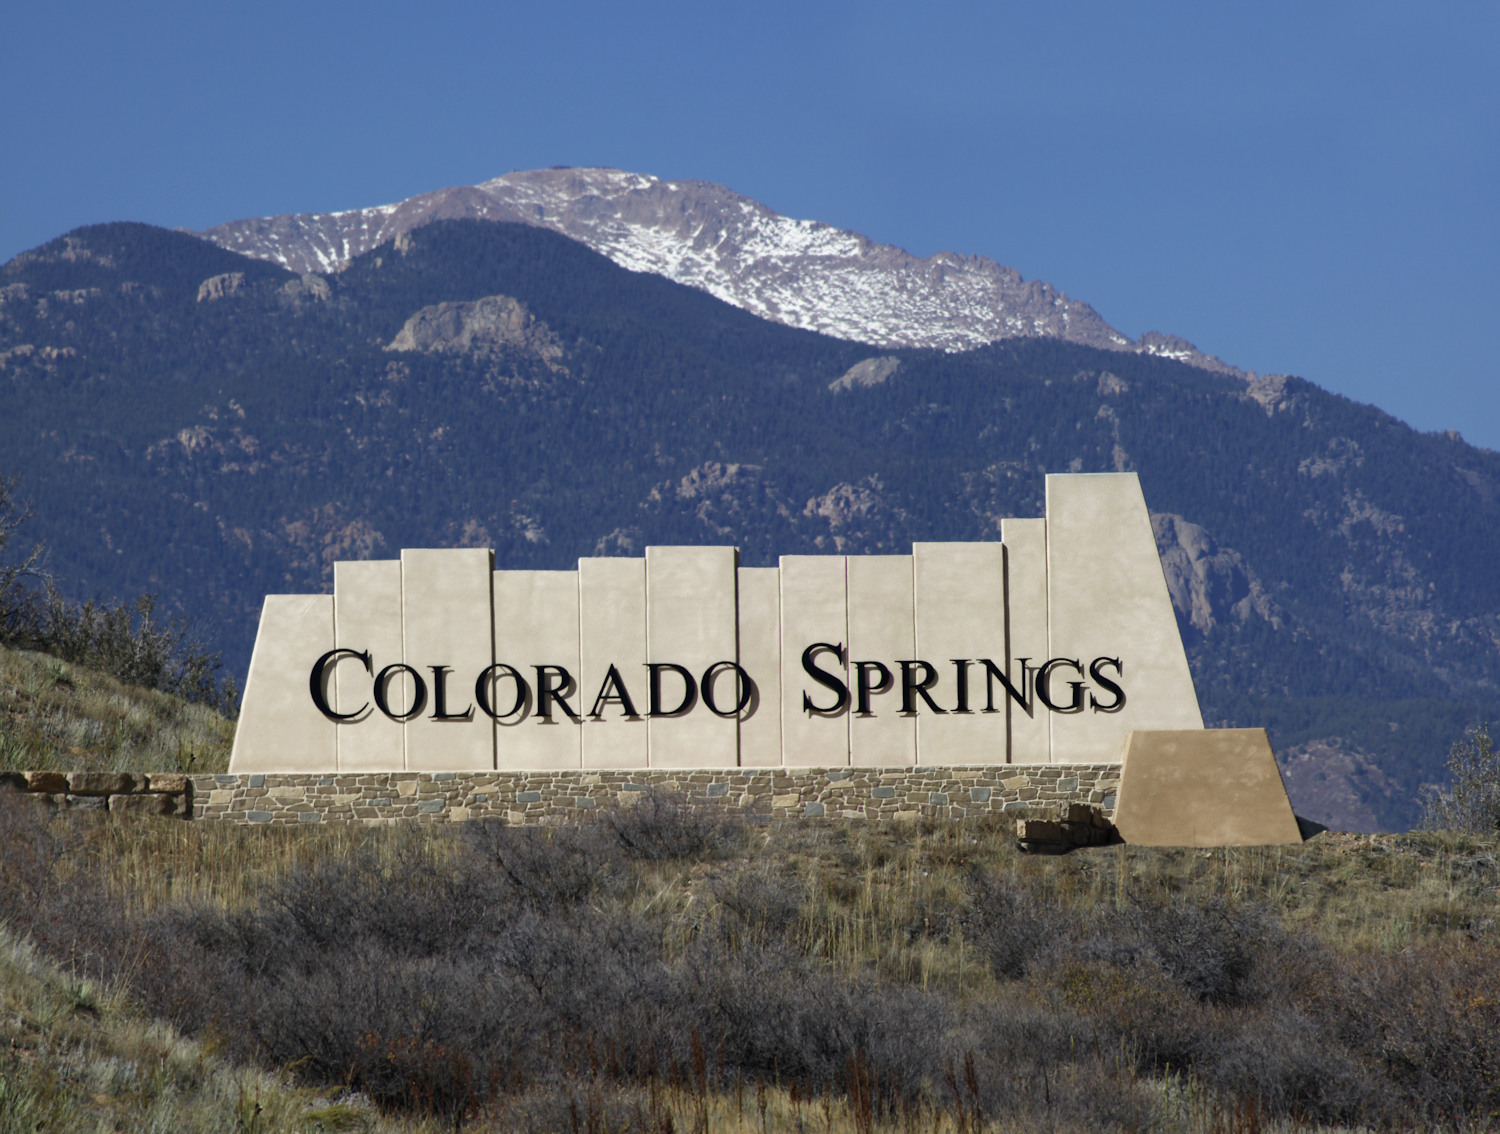 Colorado-Springs-sign